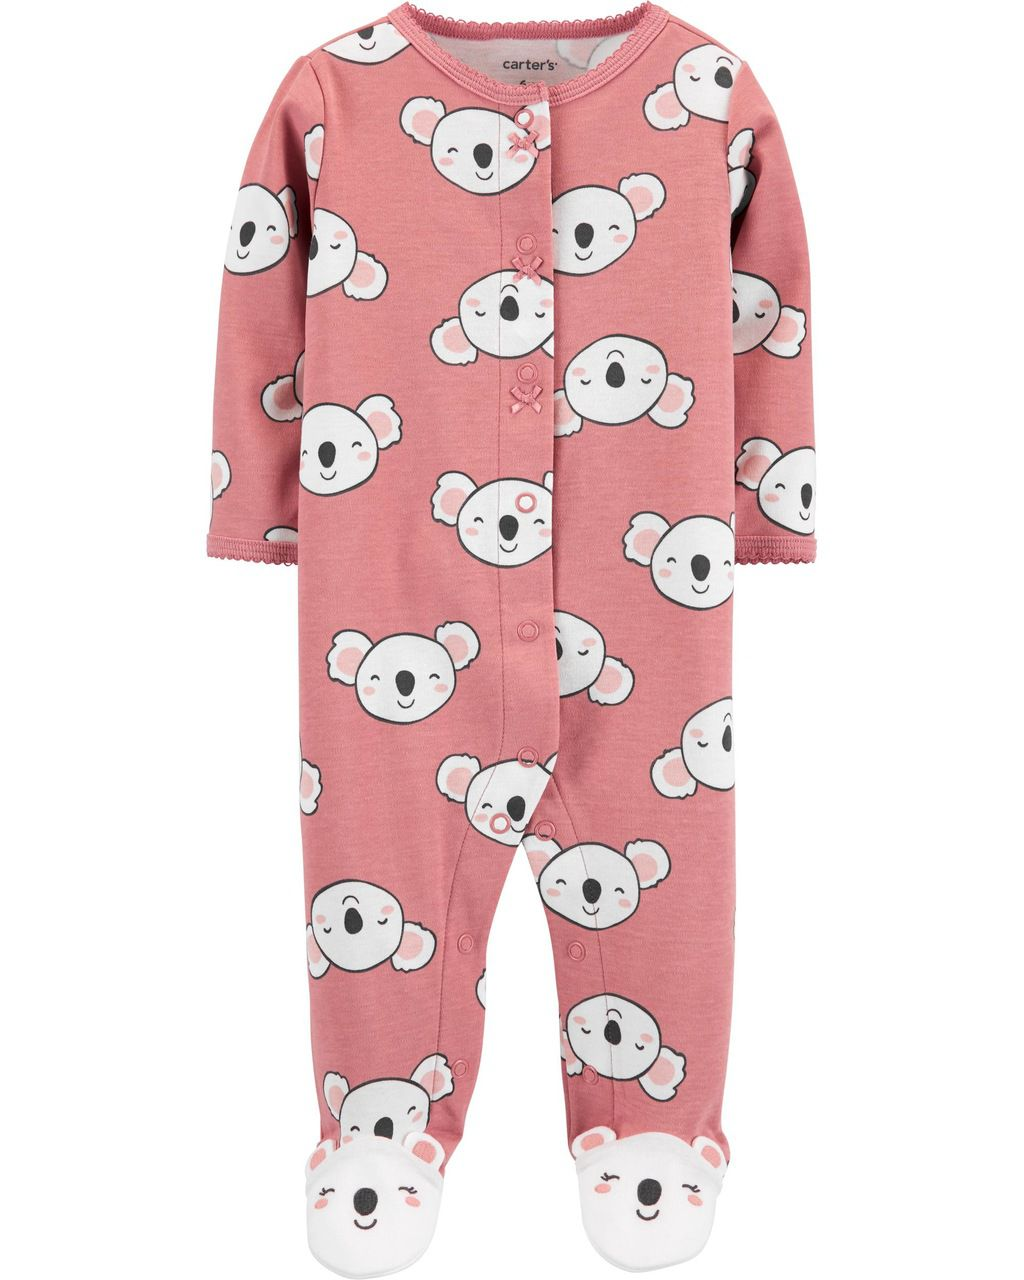 Pijama /Macacão Sleep & Play Koala Girl Carter's